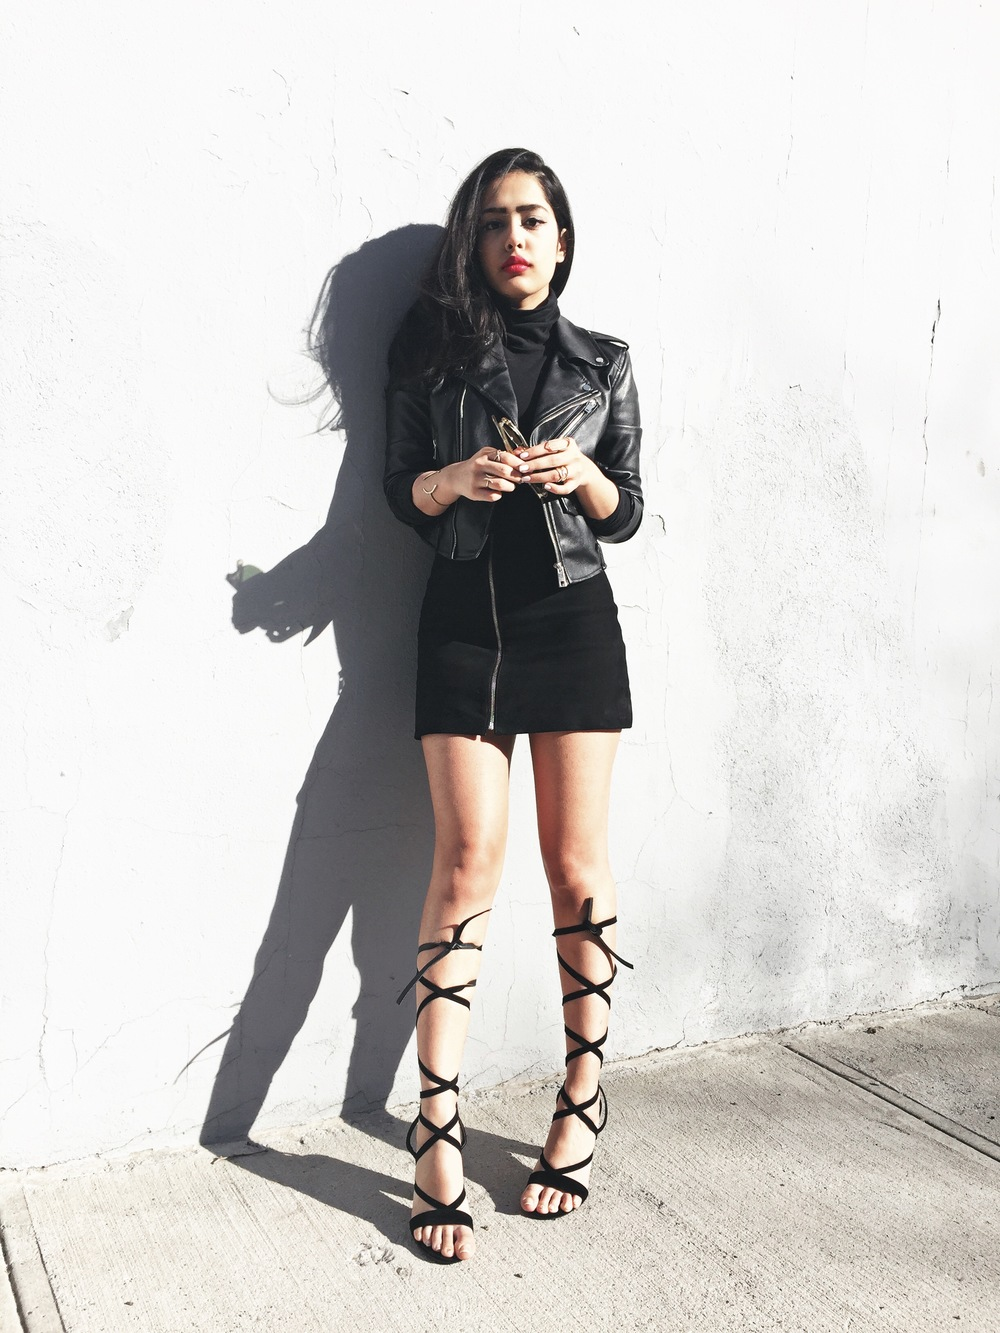 arushi khosla, arushi.co, public desire, lace up heels, williamsburg, zara leather jacket, classic specs, nasty gal skirt